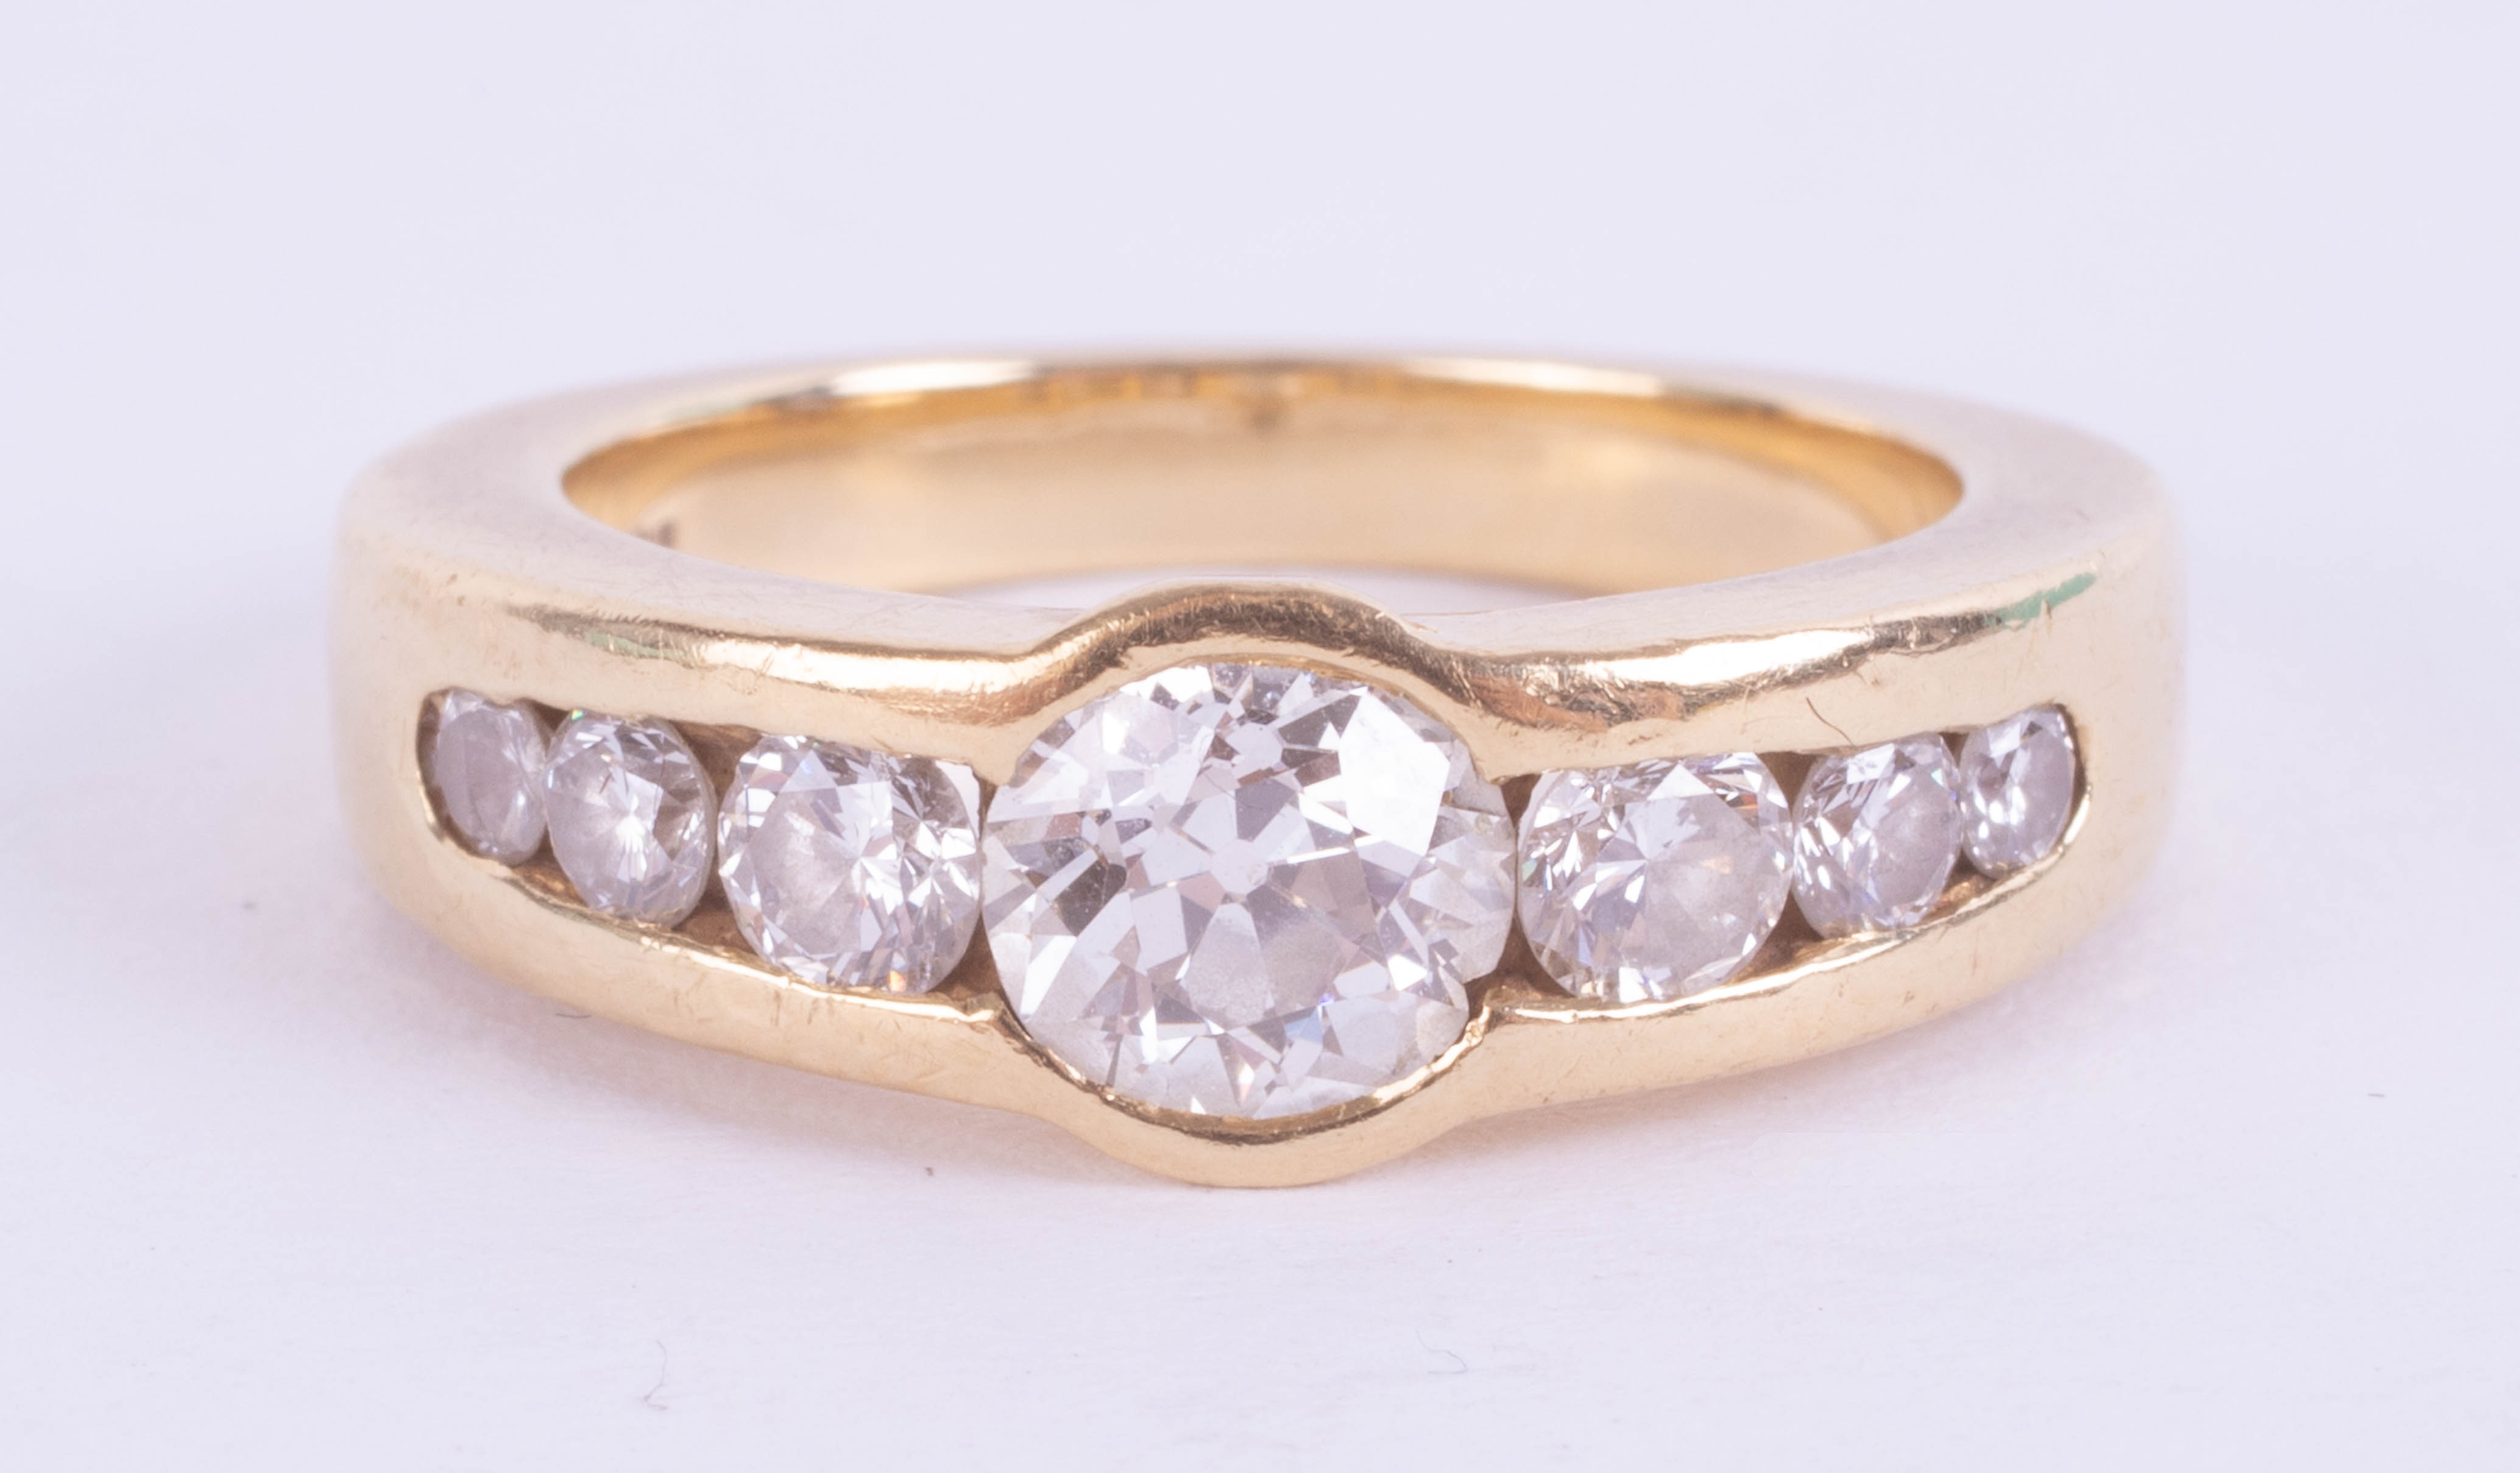 An 18ct diamond set seven stone ring, the central diamond approximately 0.80ct, with a copy of a